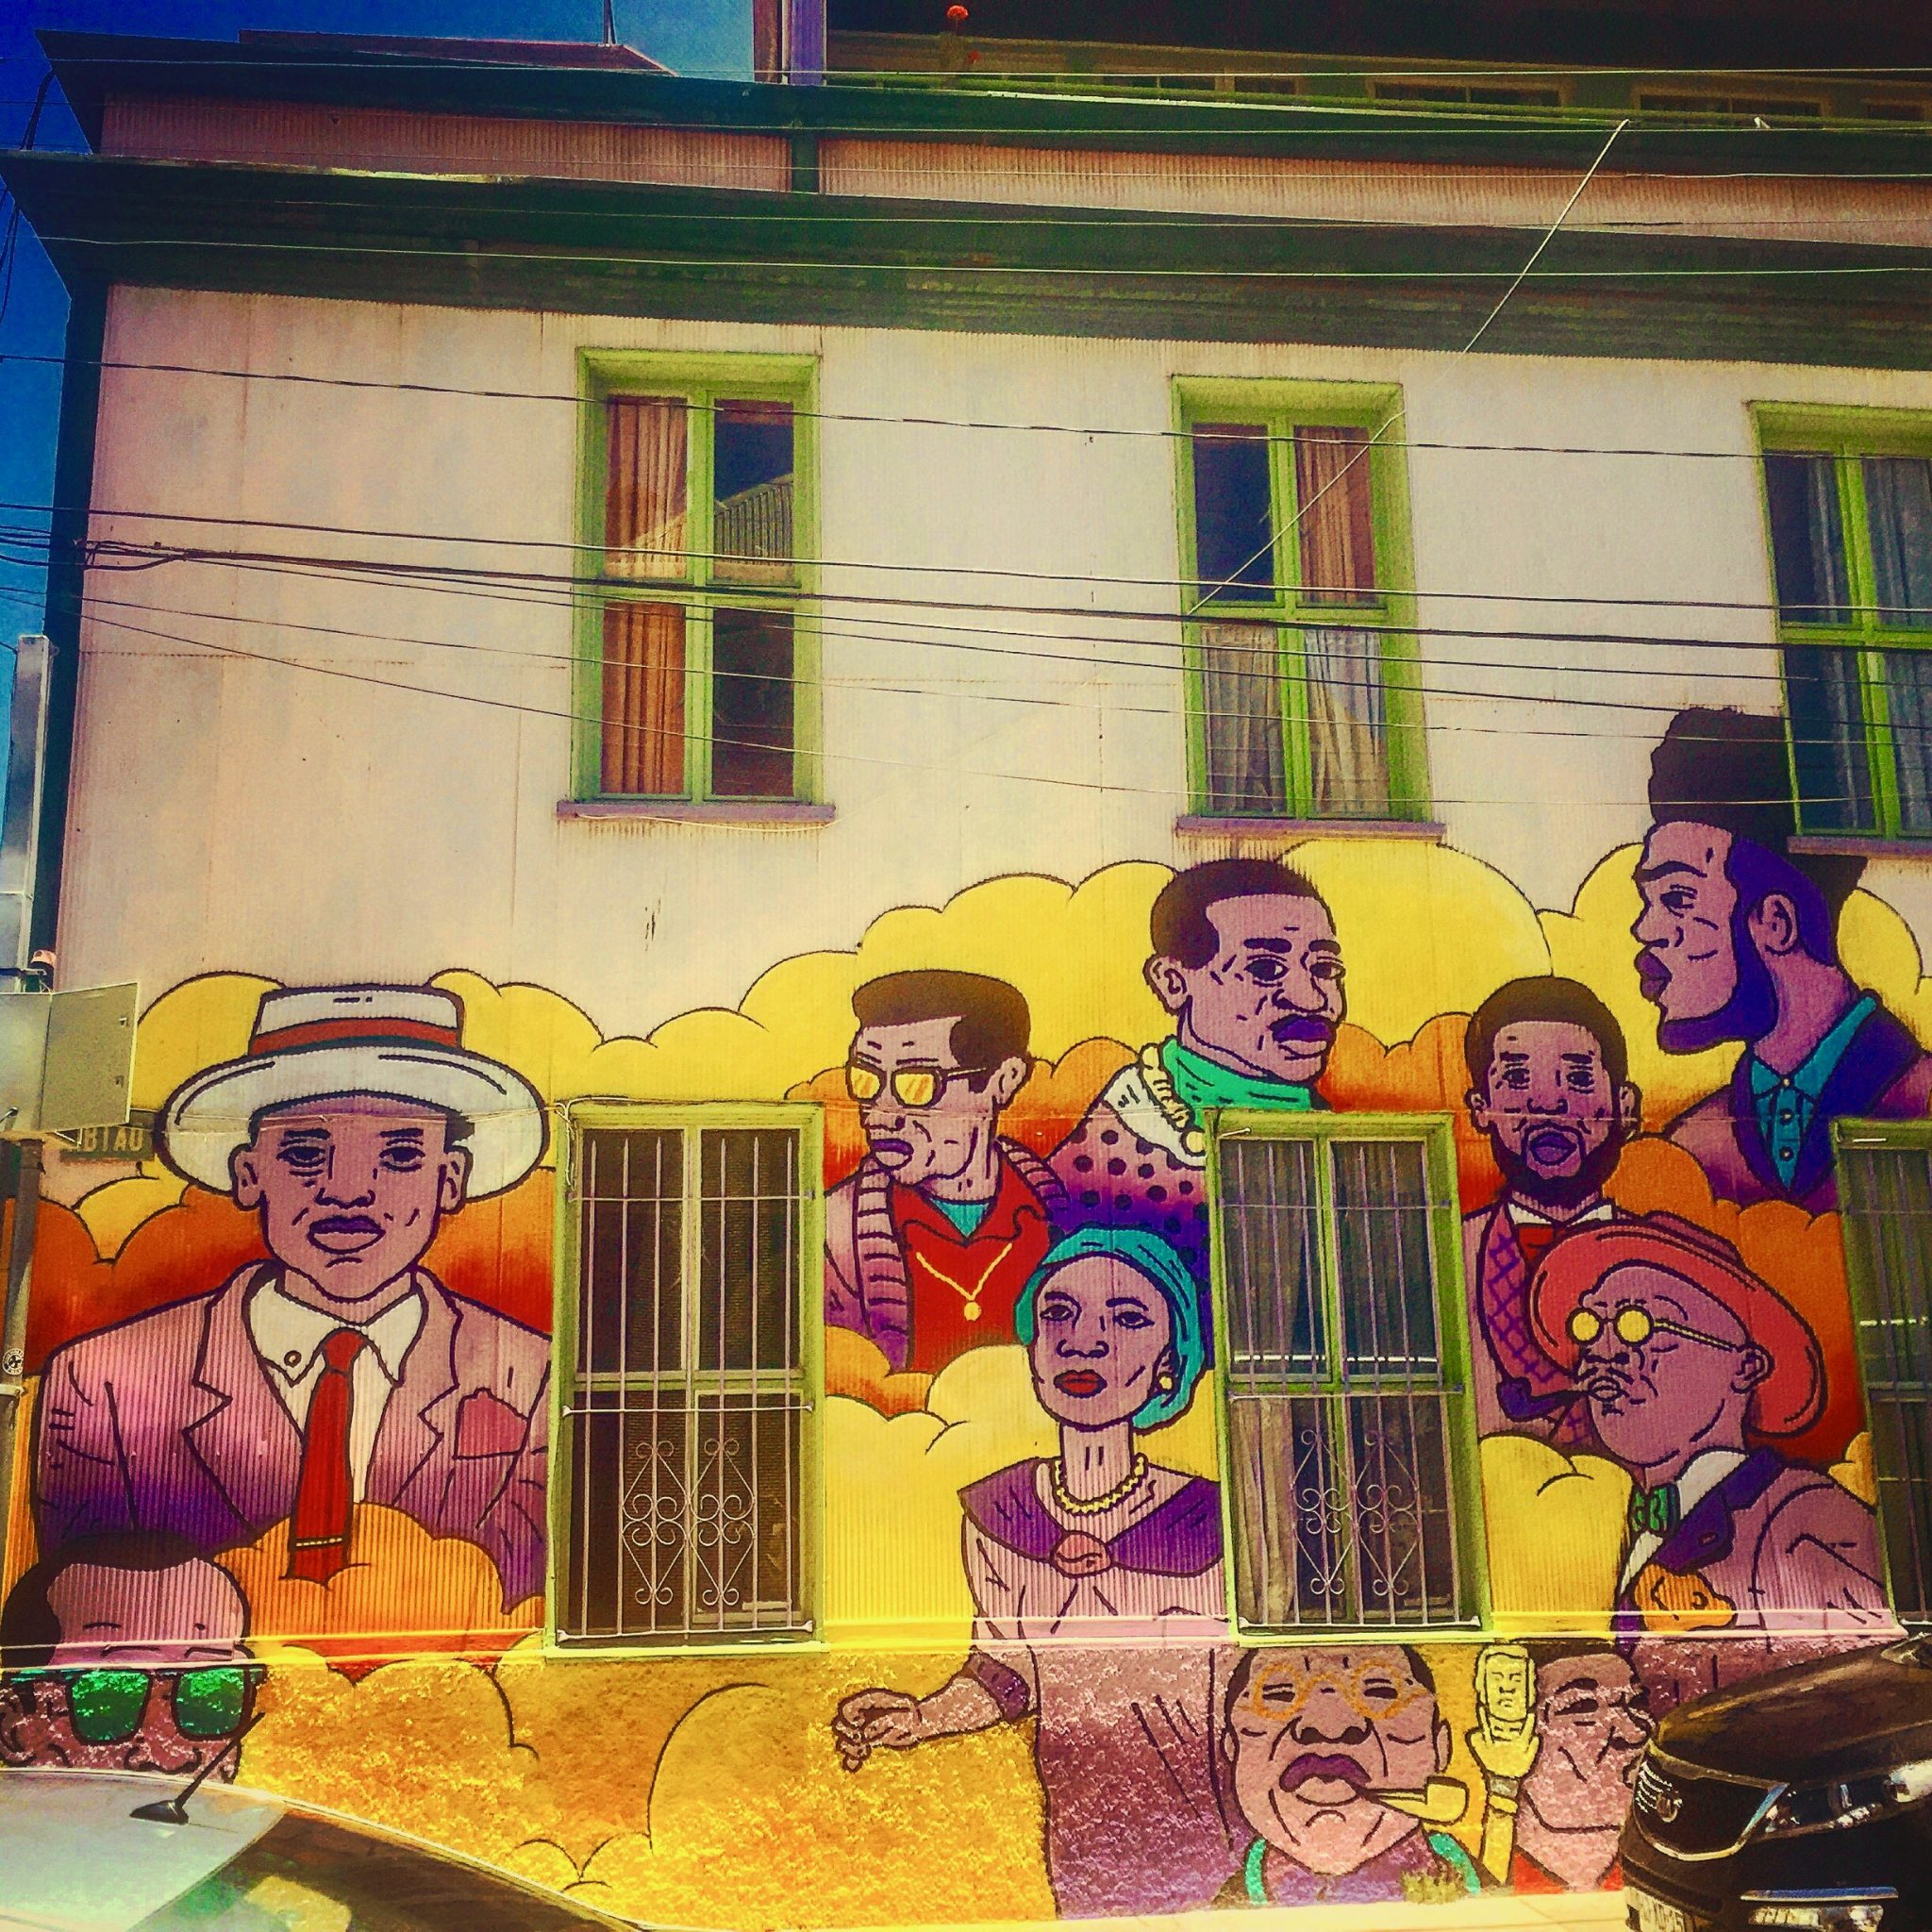 Valparaíso, Chile fun street art with the family